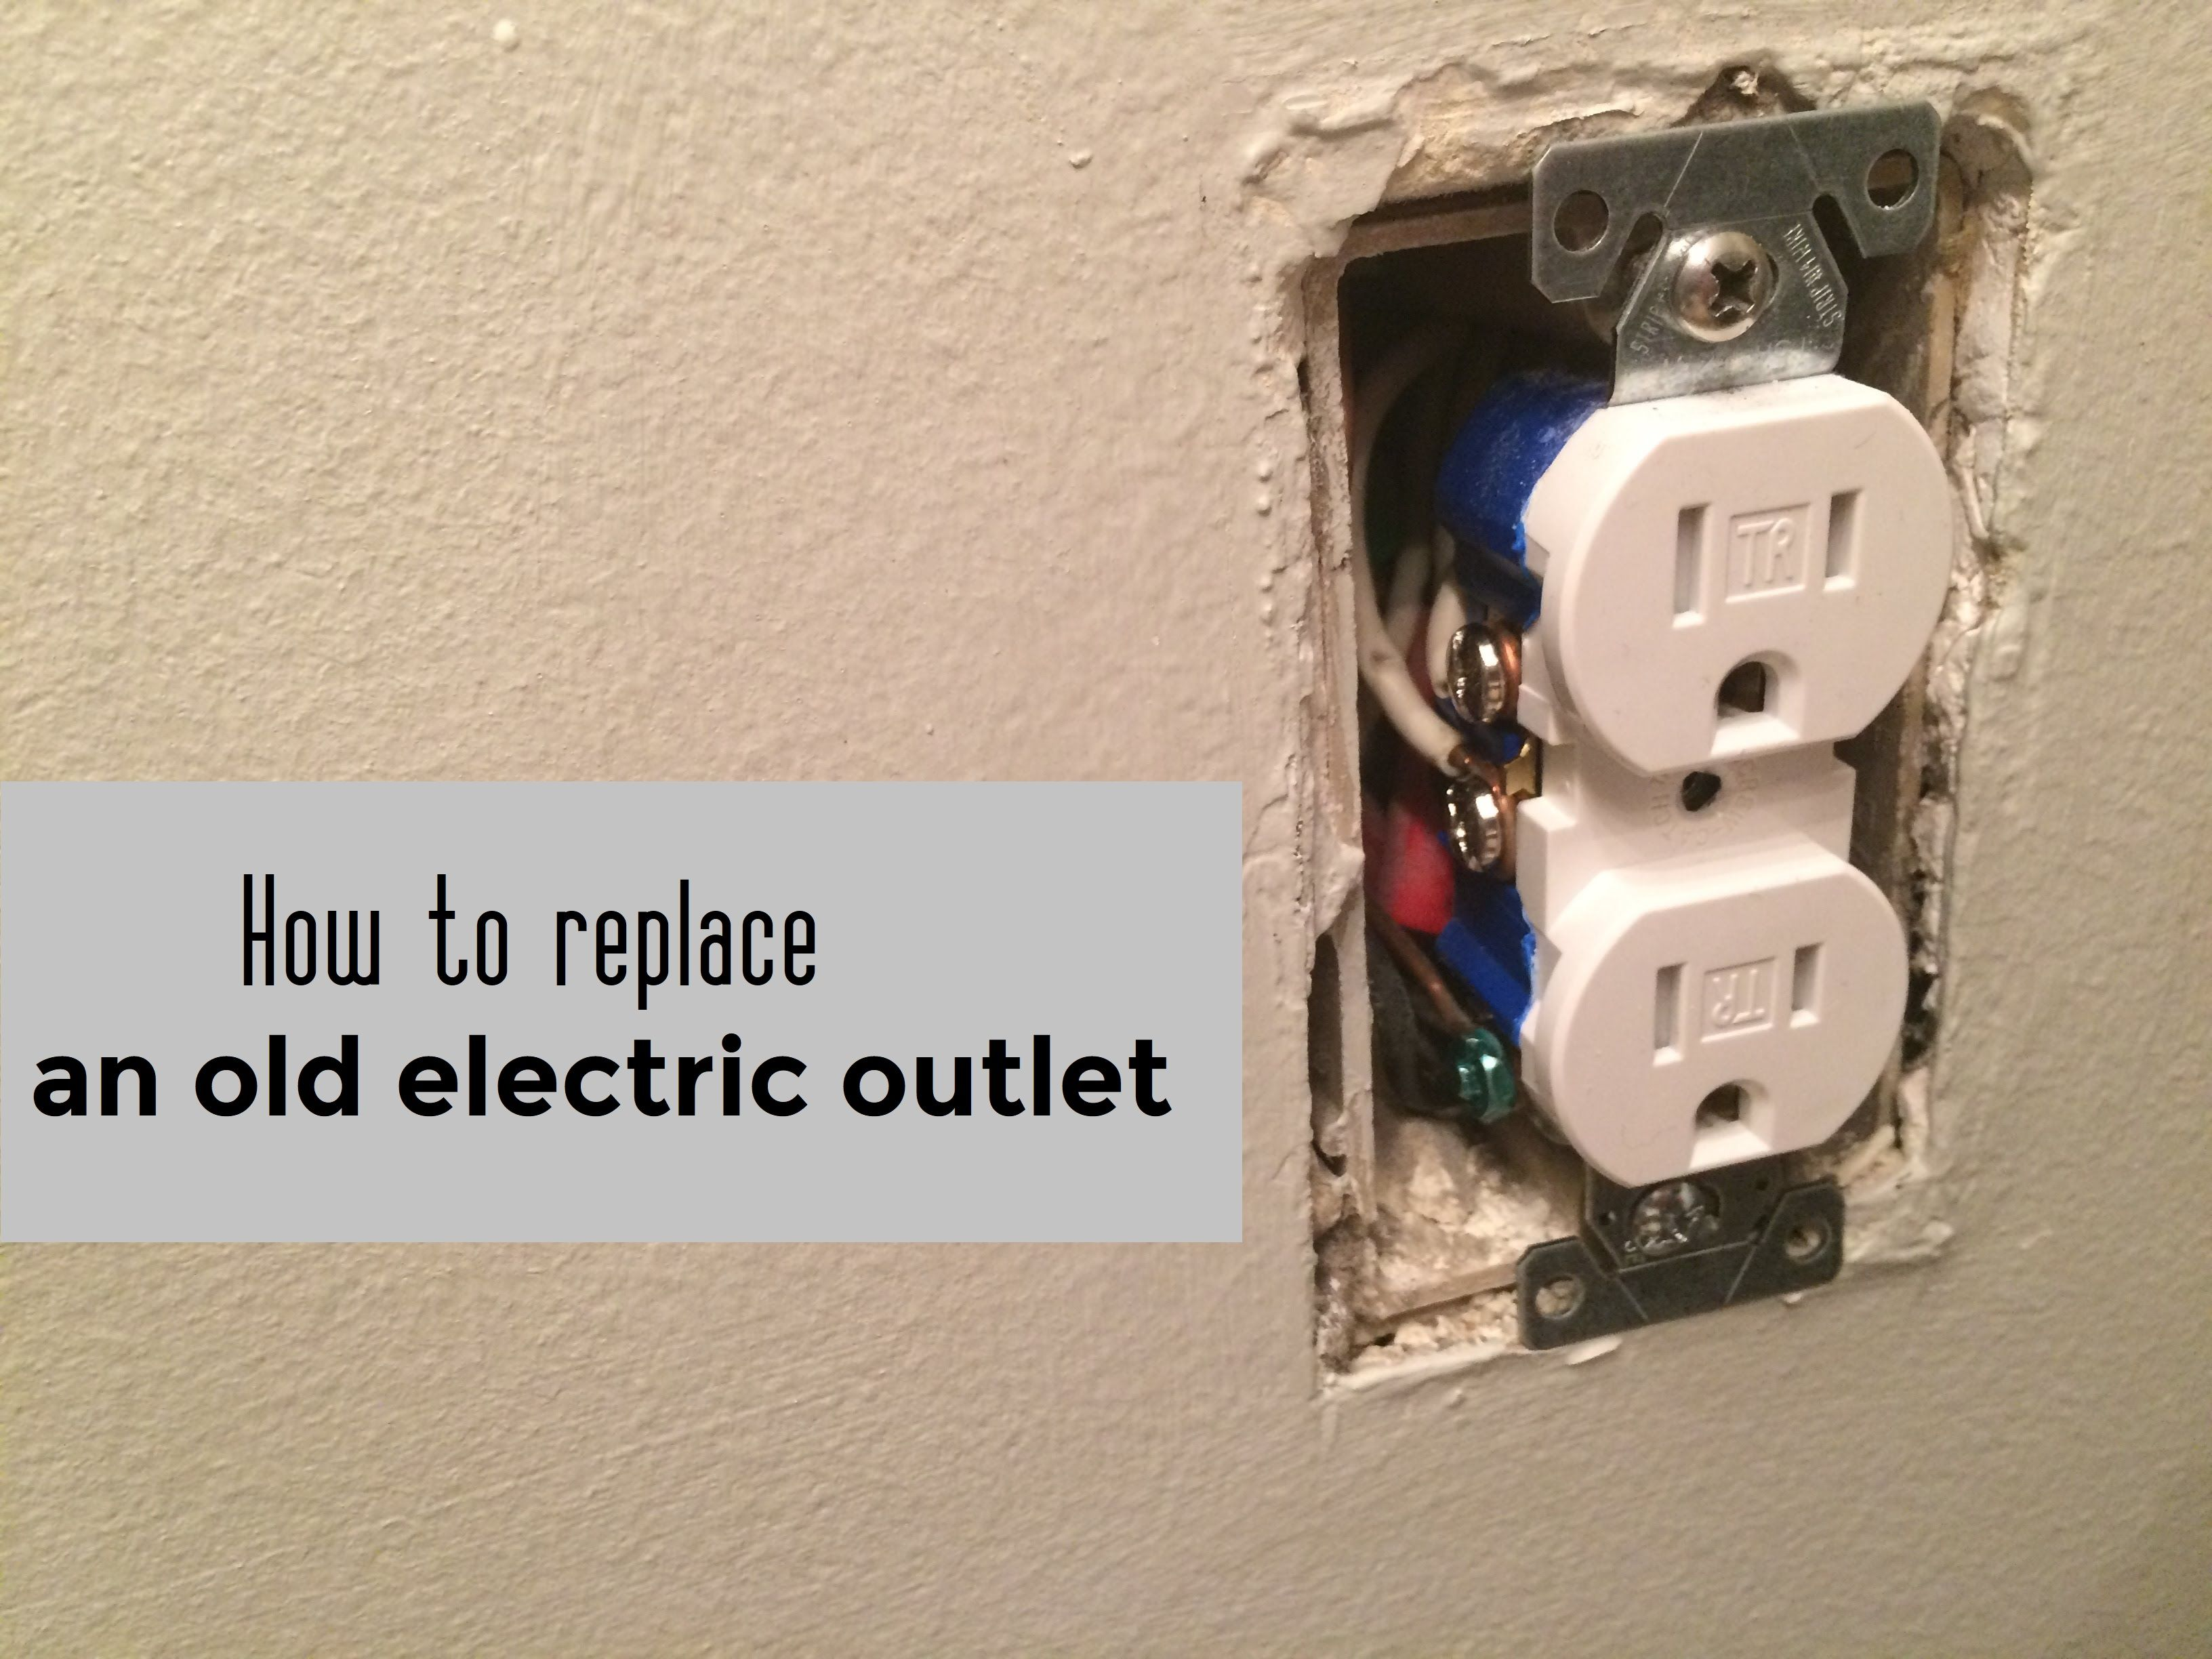 medium resolution of how to replace an old electric outlet diy doityourself outlet electrical electric